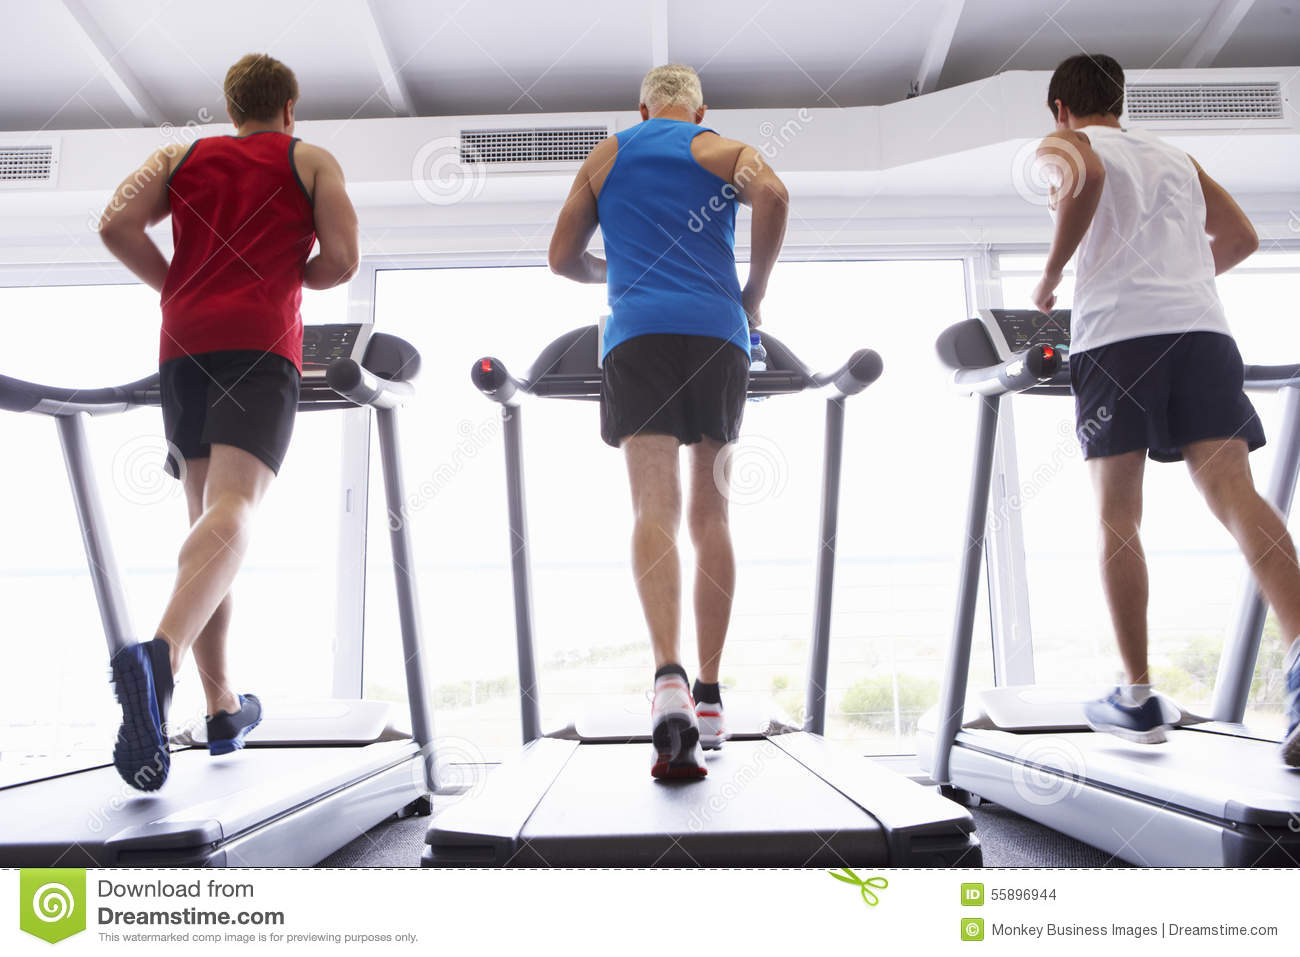 back view of group of men using running machines in gym guy running clipart person running away clipart